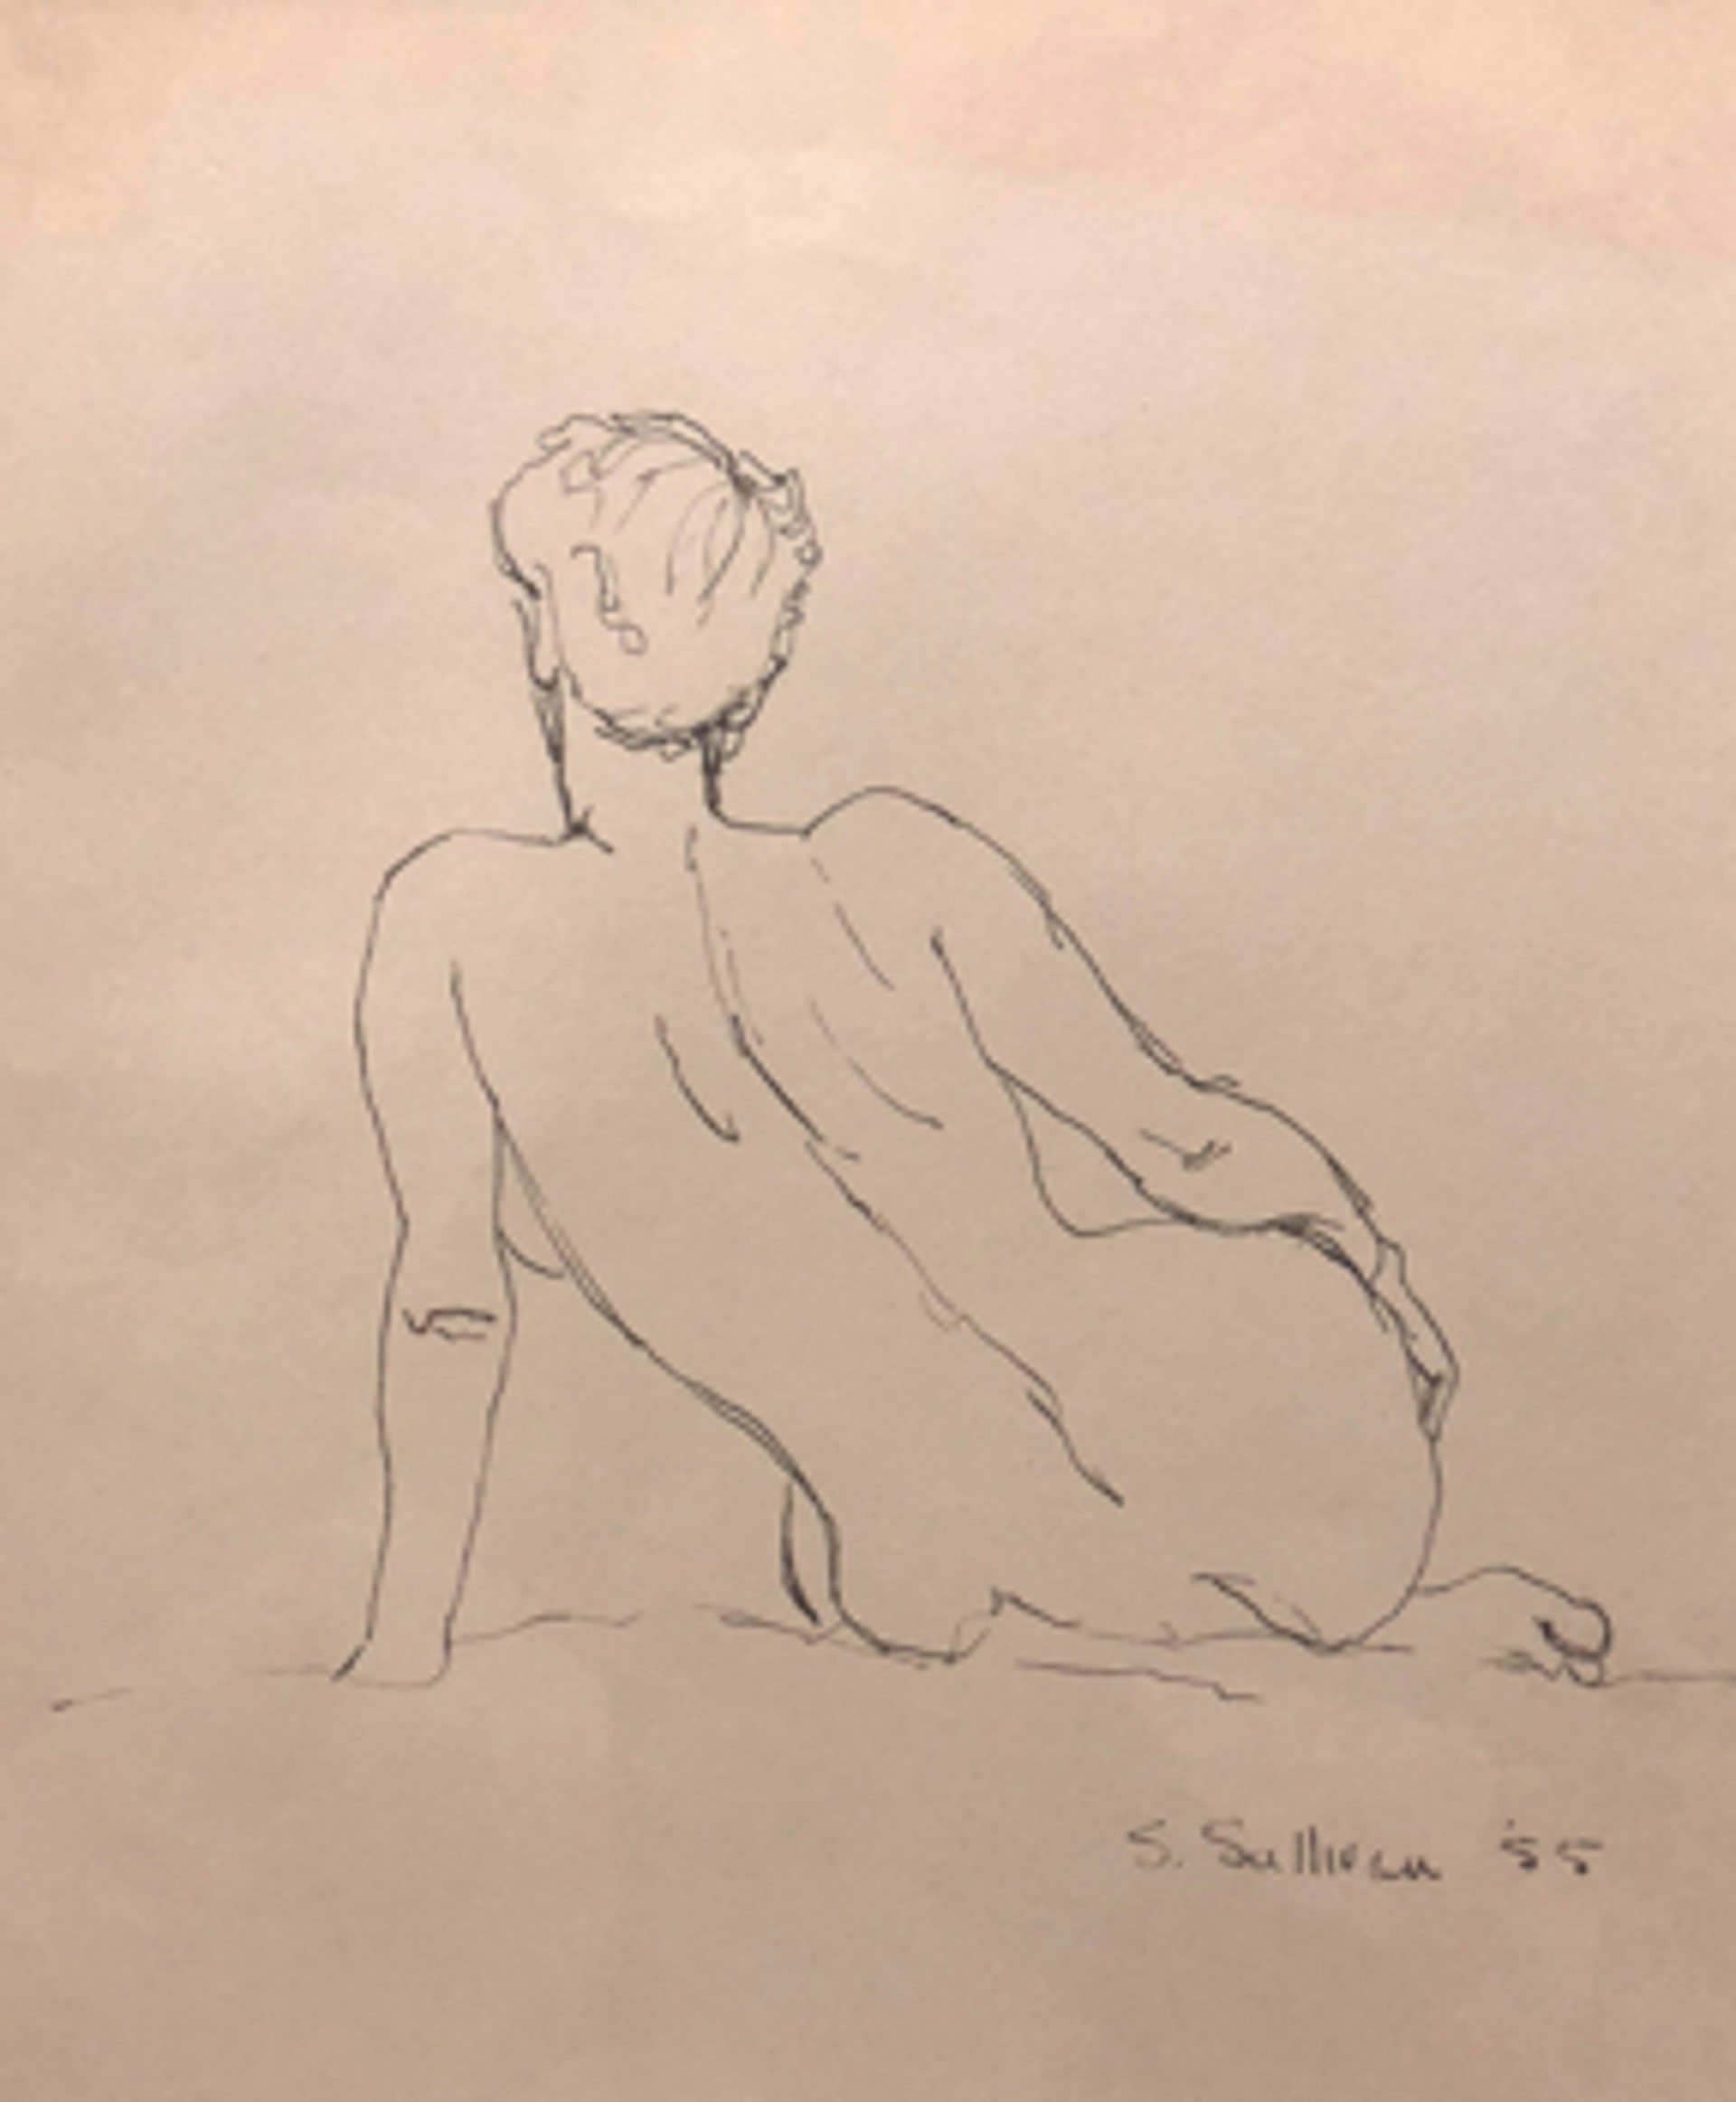 Nude Sketch 2 by Stella Sullivan